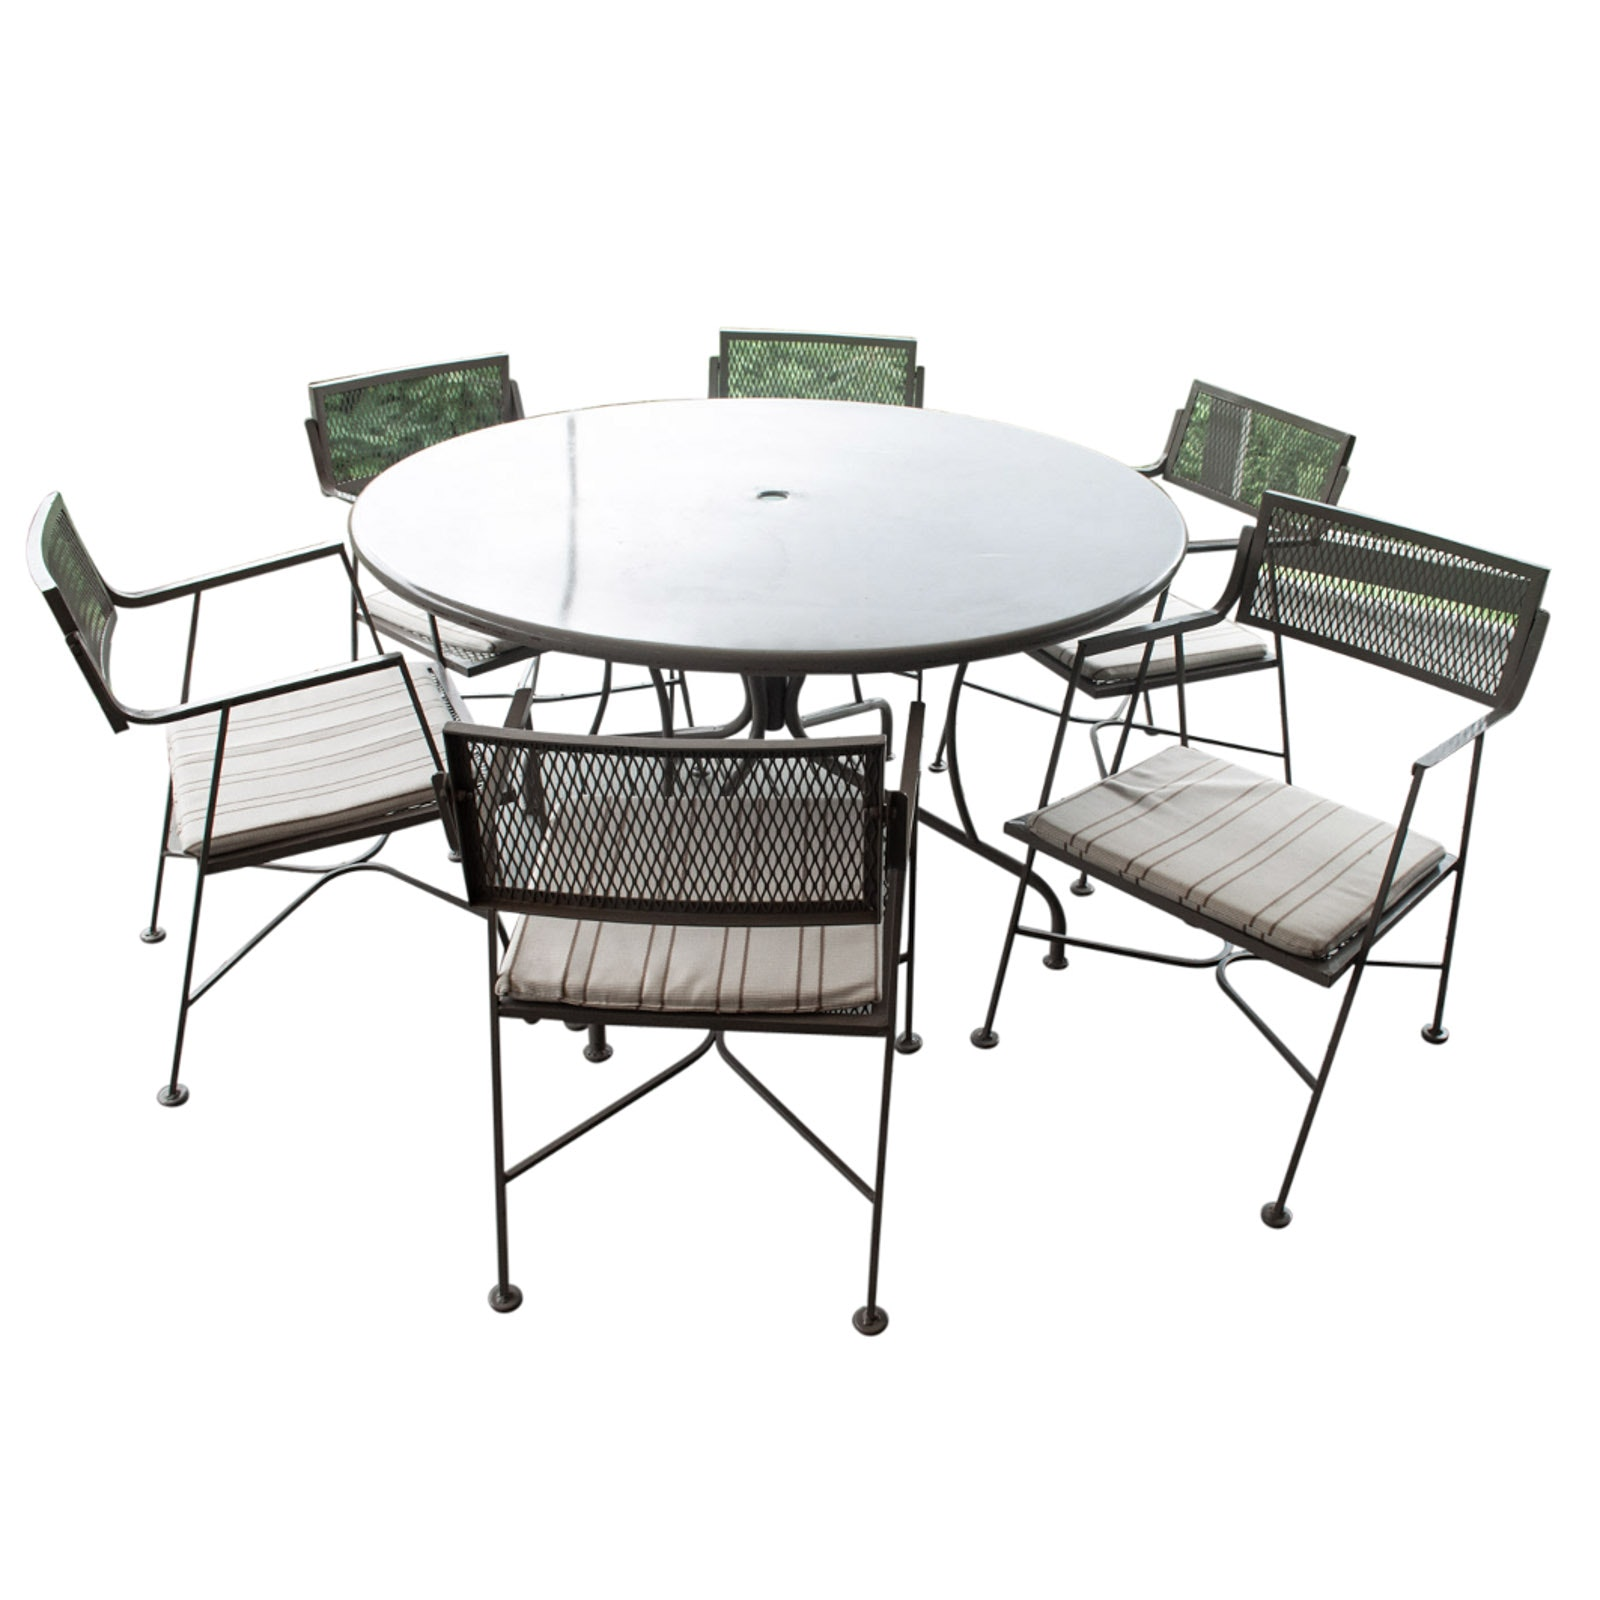 Vintage Outdoor Metal Table and Chair Set